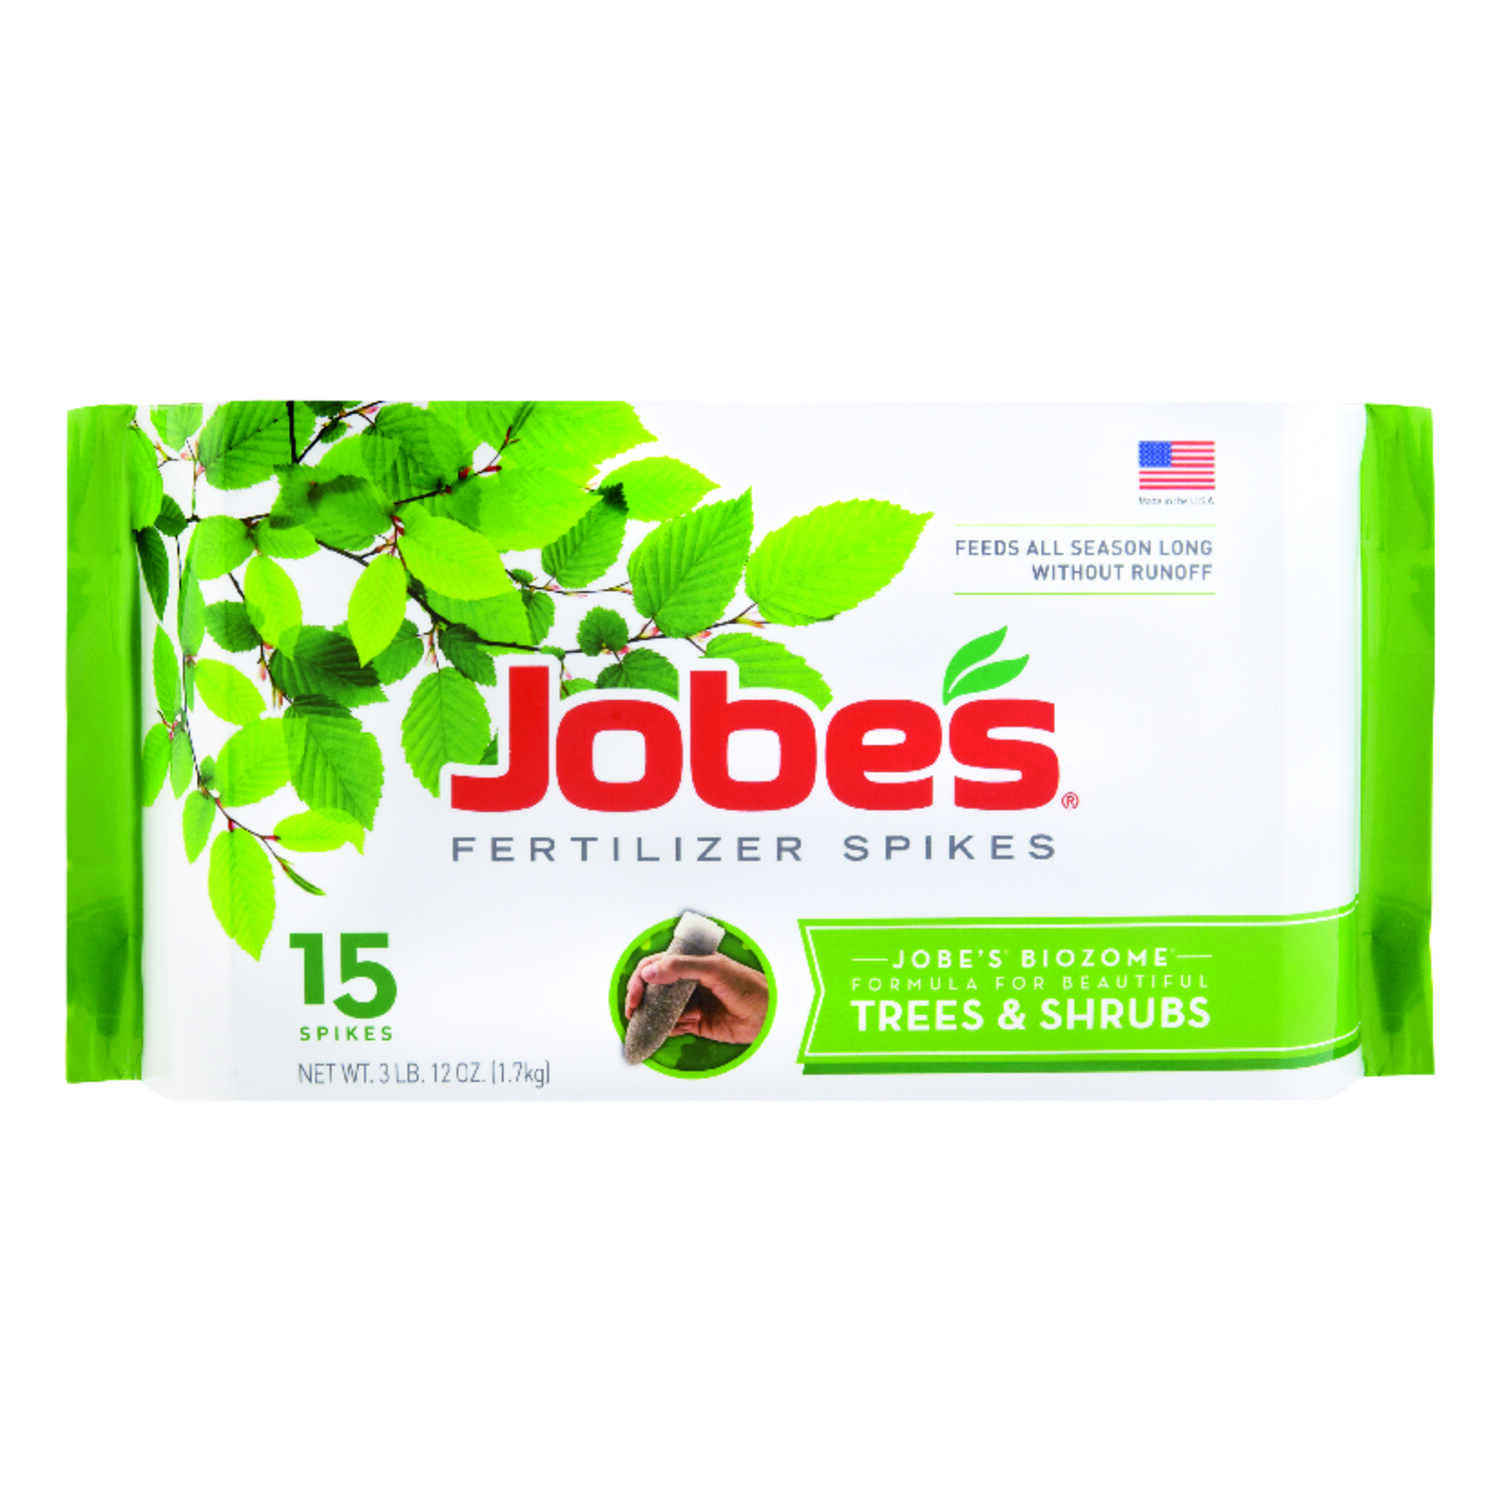 Jobe's  Trees & Shrubs  Spikes  16-4-4  Fertilizer Spikes  15 pk